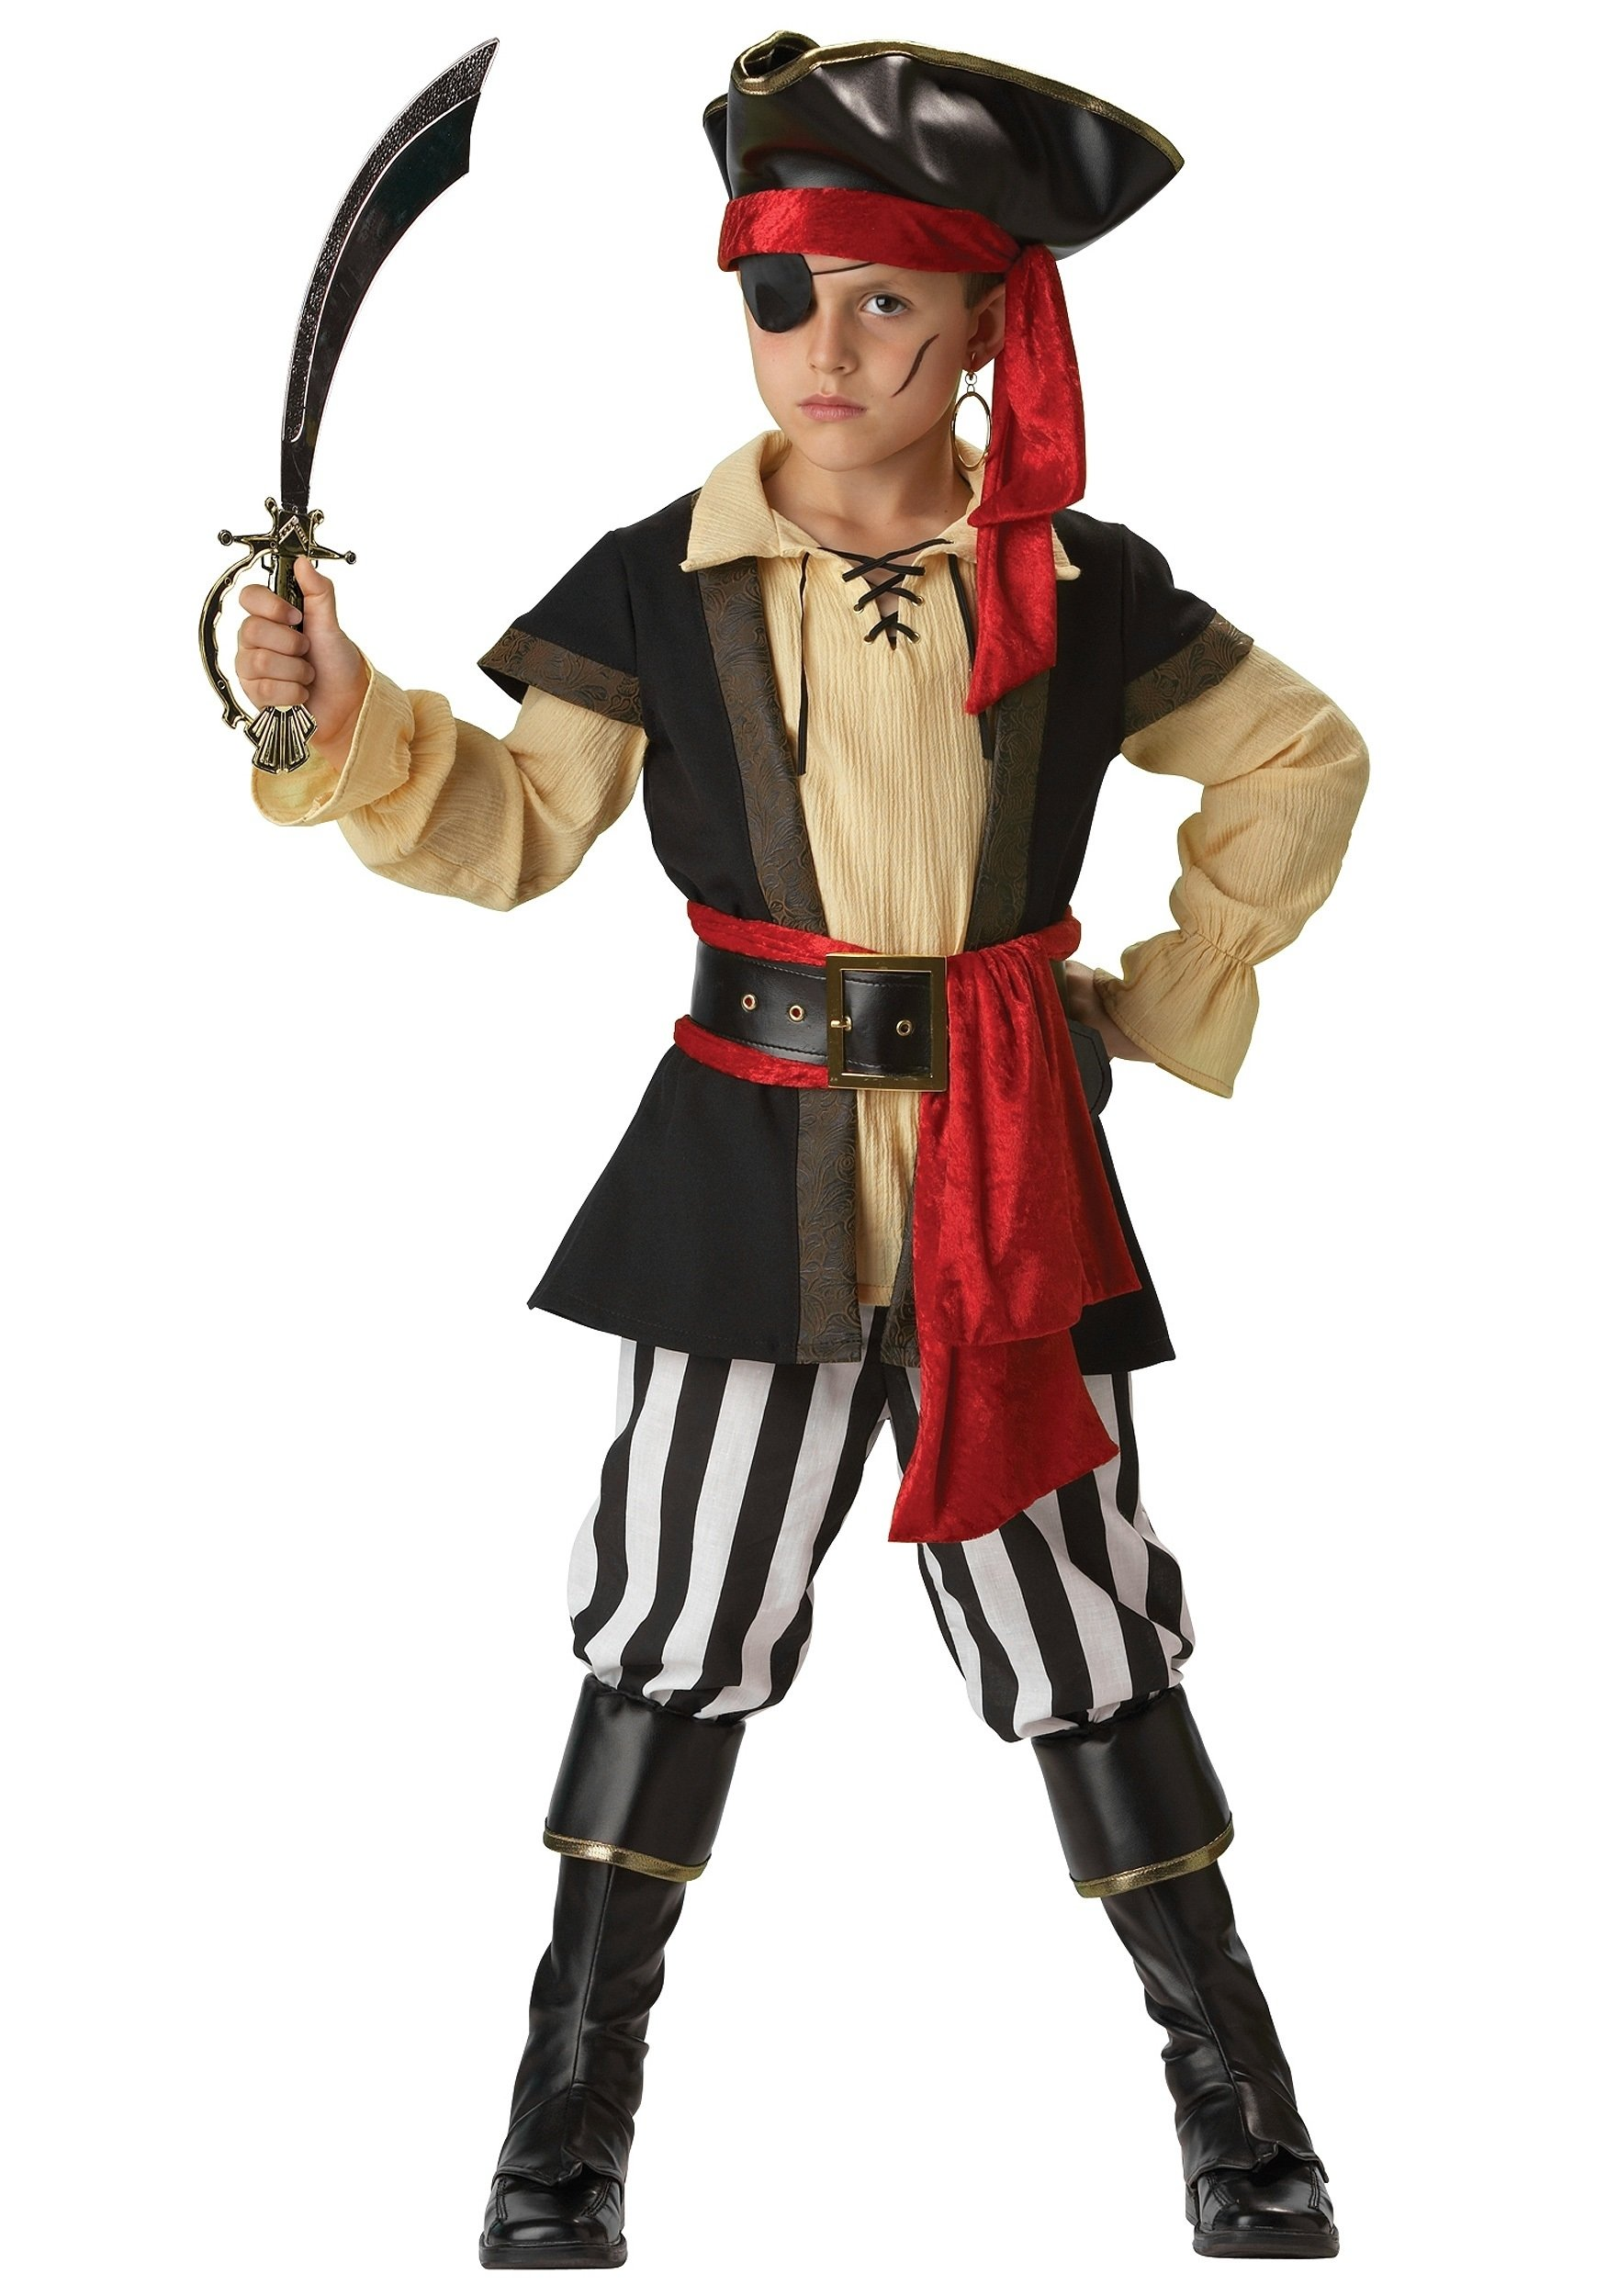 10 Ideal Halloween Costumes For Kids Ideas kids scoundrel pirate costume 1